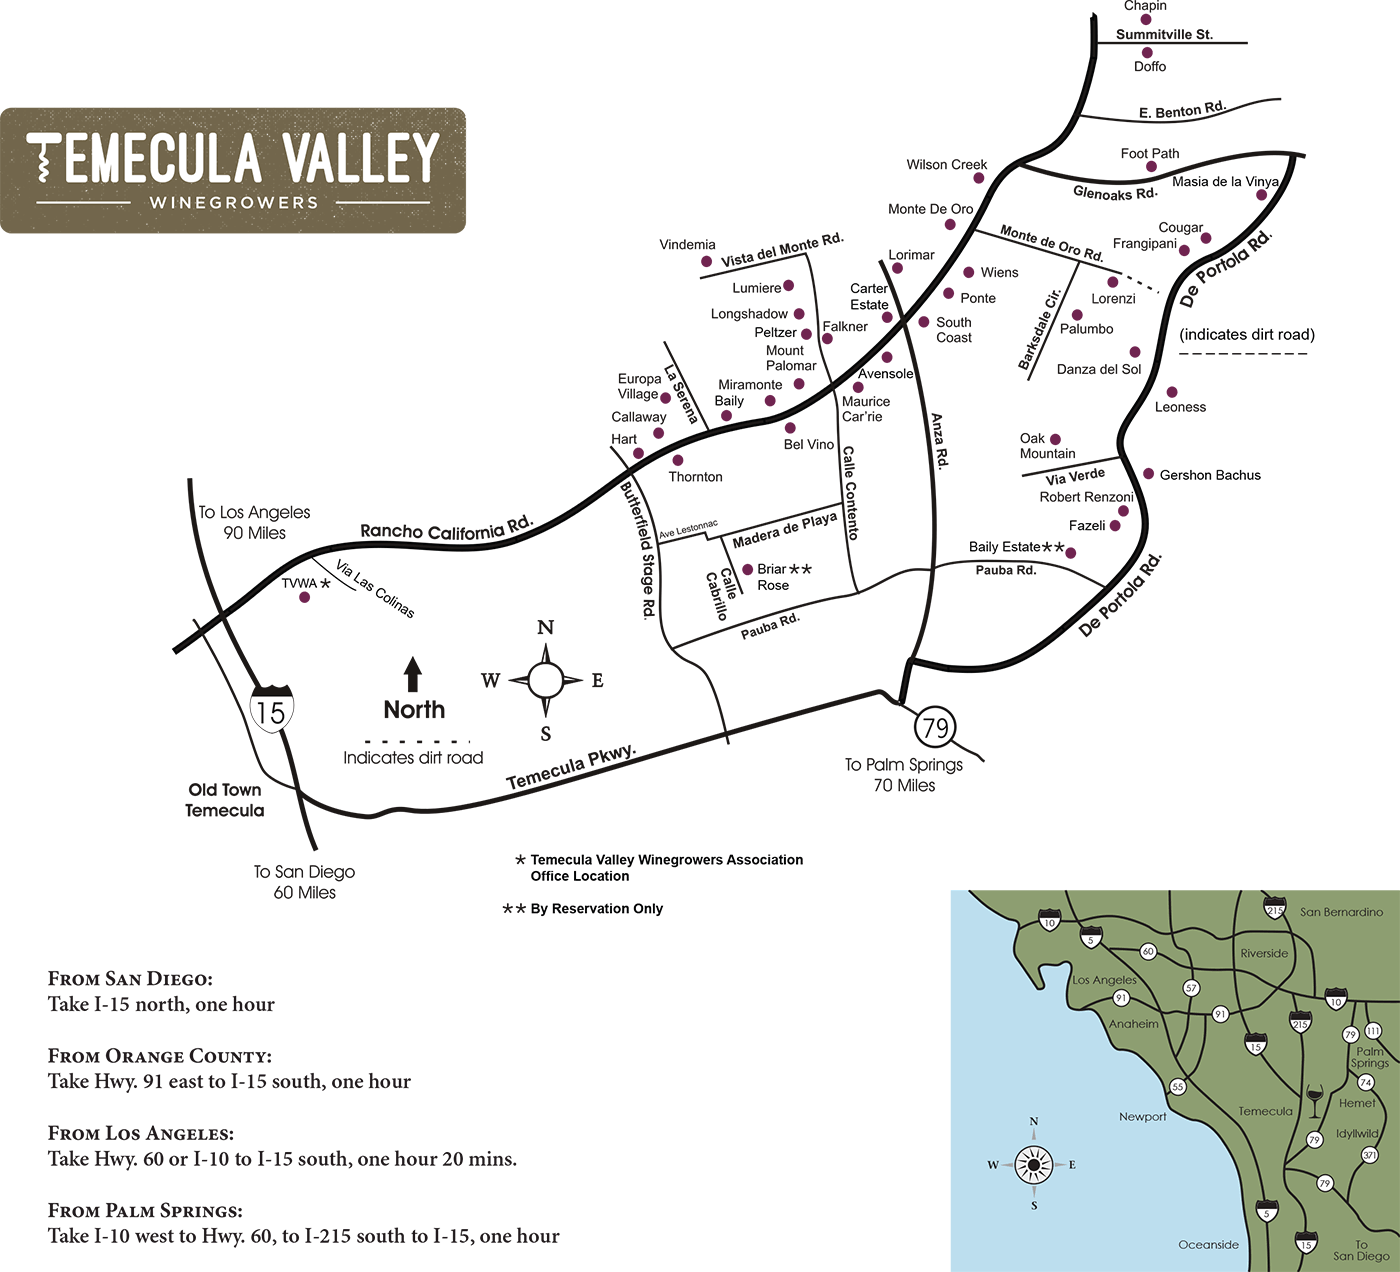 Temecula Valley Winegrowers Association Winery Map